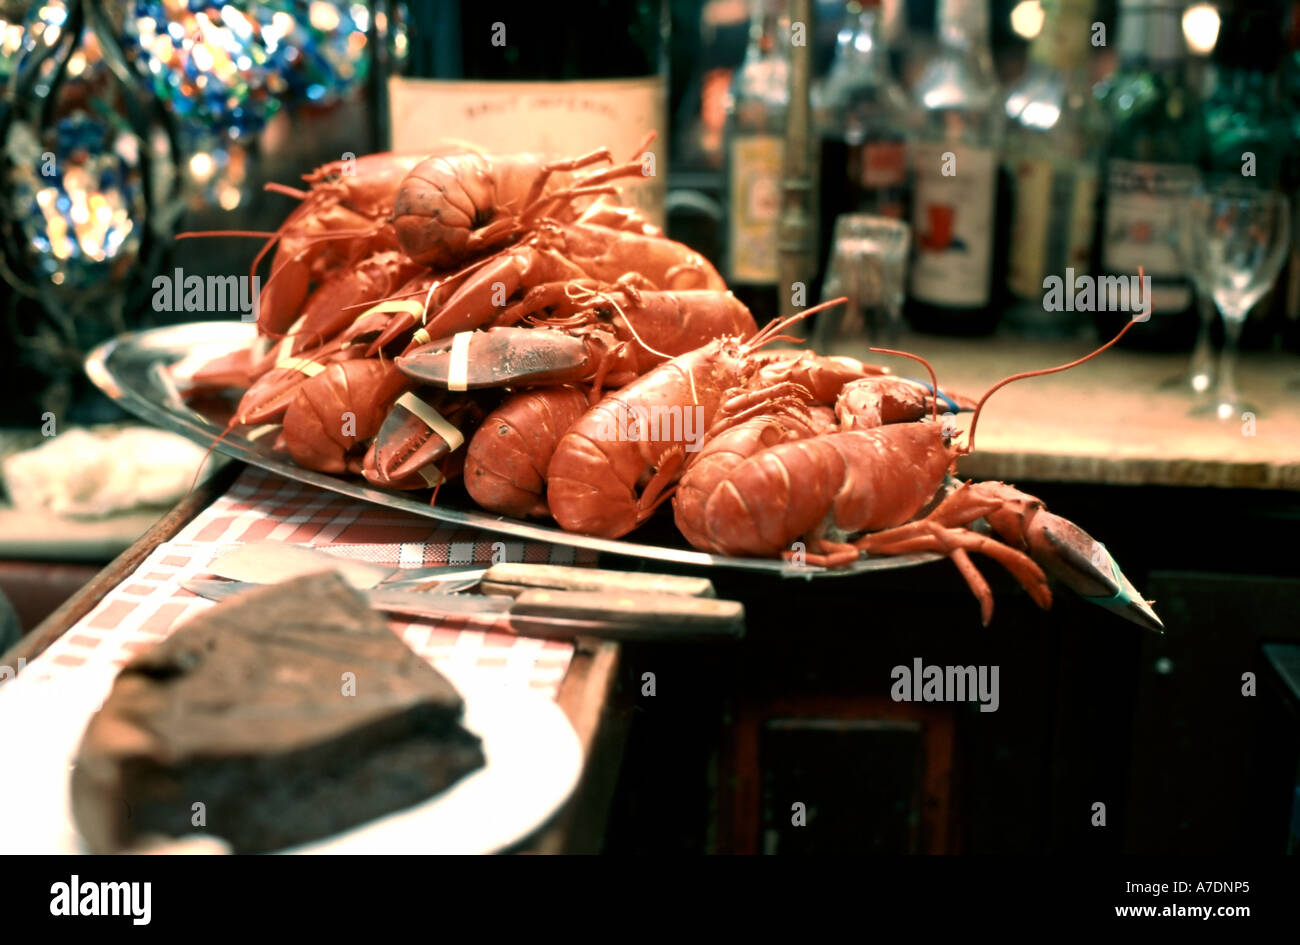 Paris France, Cooked Food on a Plate Lobsters from Brittany, French Restaurant 'Aux Crus Bourgogne' Seafood, - Stock Image